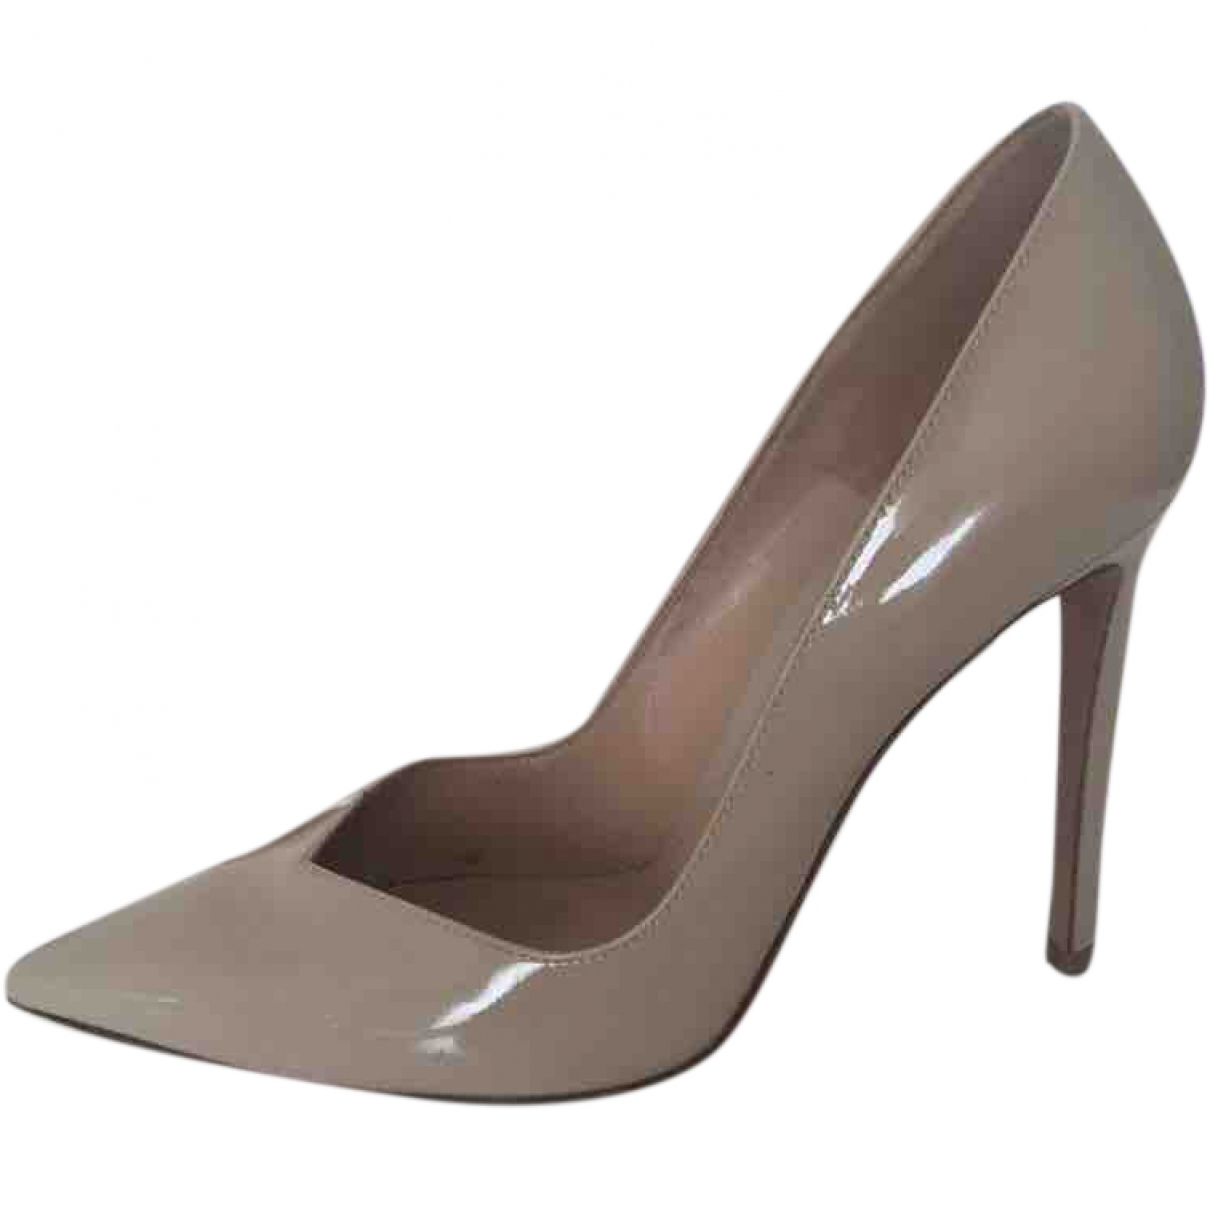 Gianvito Rossi \N Beige Patent leather Heels for Women 37 EU